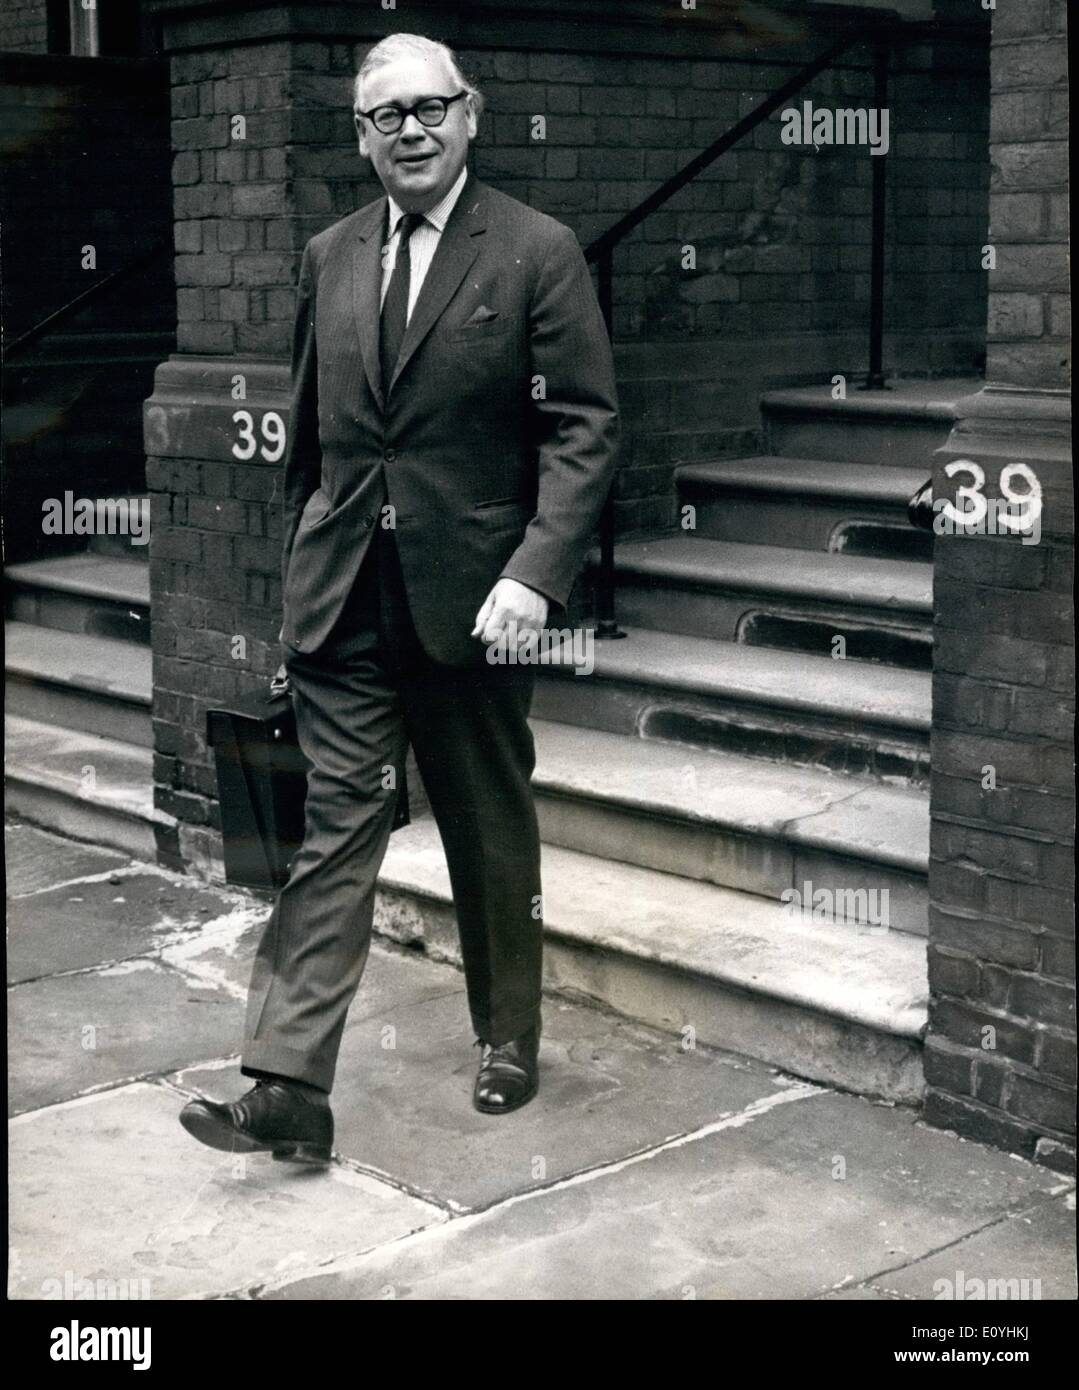 Jun. 06, 1970 - Mr. Geoffrey Rippon is New ''Mr. Europe''.: Mr. Geoffrey Rippon, former Minister of Technology, will succeed Mr. Anthony Barber as Chancellor of the Duchy of , with responsibility for the Carmen Market negotiations. Photo shows Mr. Geoffrey Rippon leaving his home for the foreign office this morning. - Stock Image